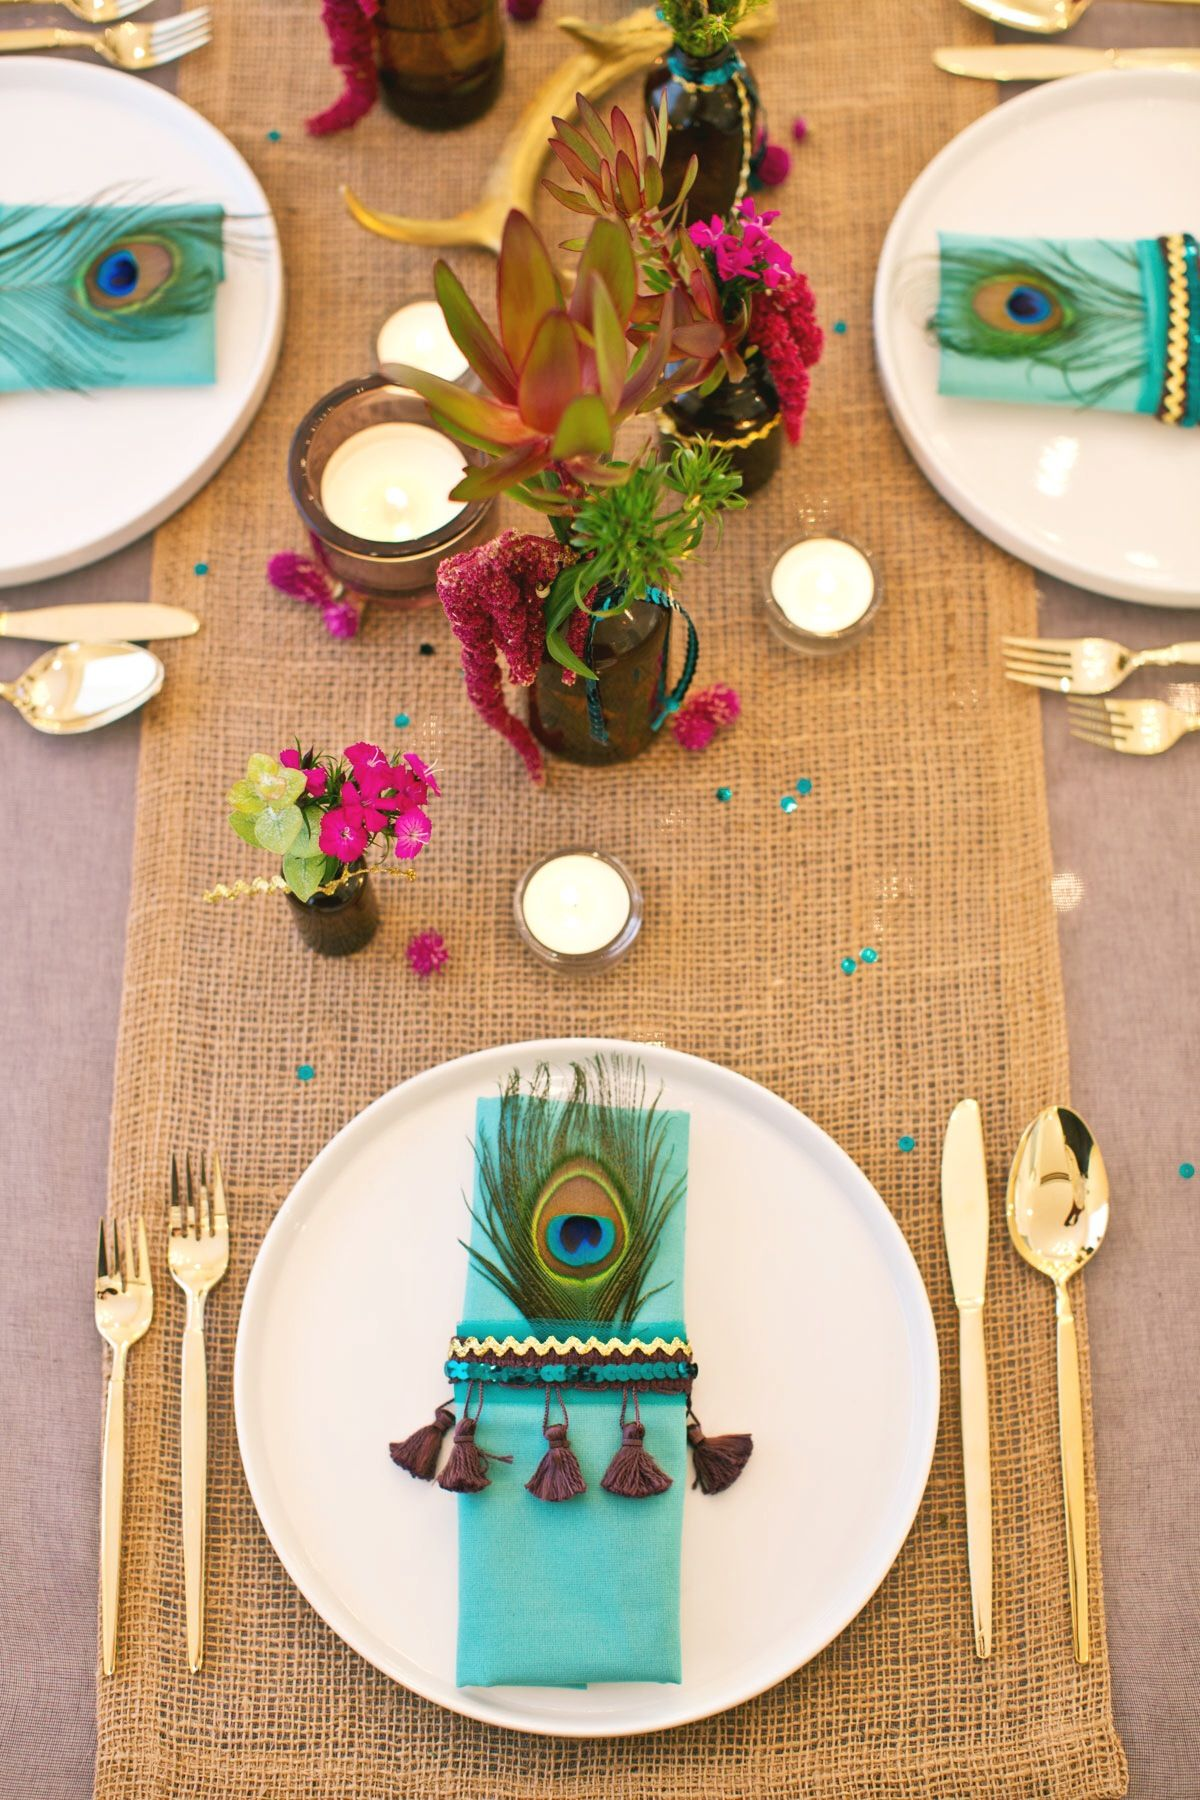 Diy Dinner Party Ideas Part - 46: Gypsy New Yearu0027s Dinner Party / Diy / Bohemian / Tablescape Styling By MsQ